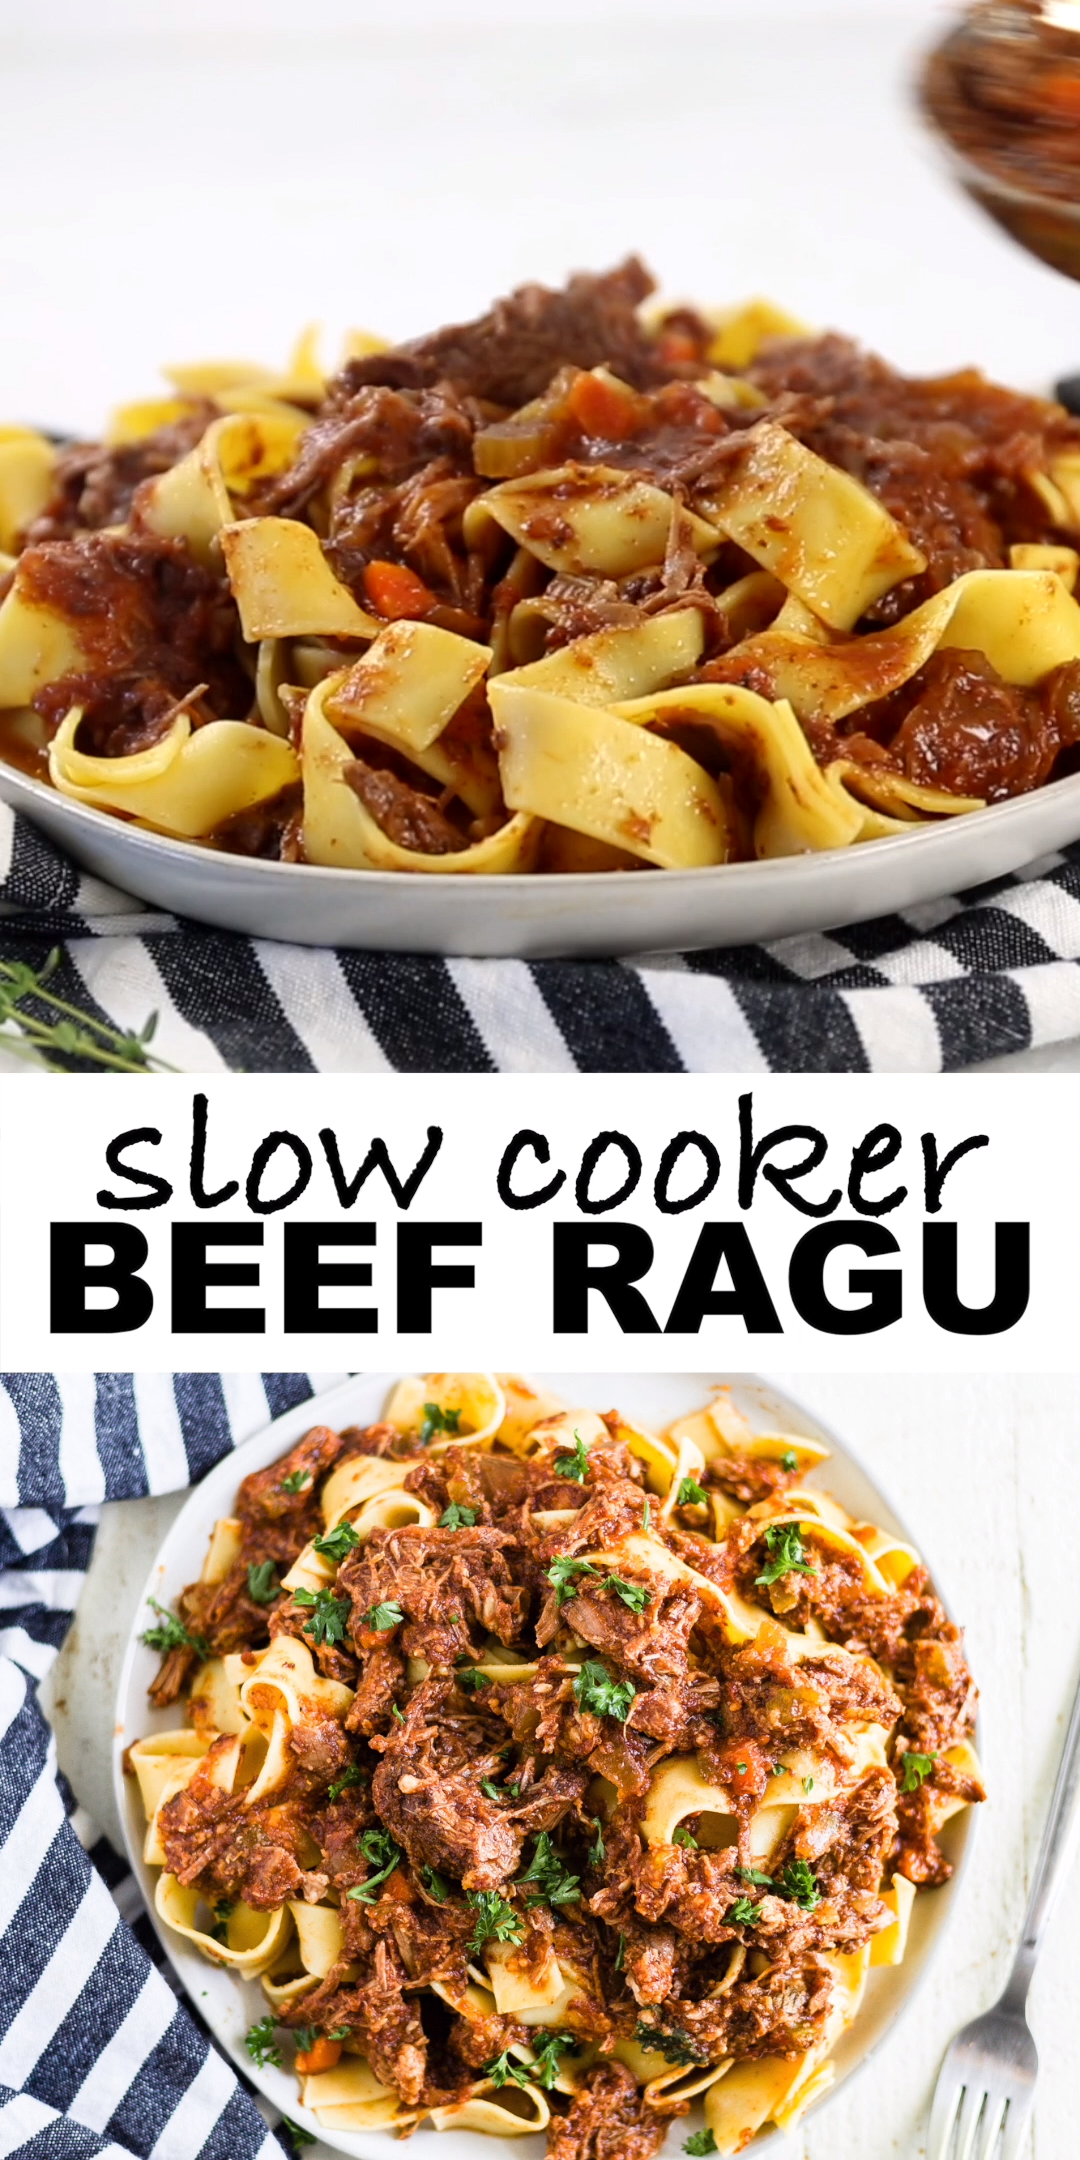 Photo of Slow Cooker Beef Ragu [Healthy | Whole30 Option!]